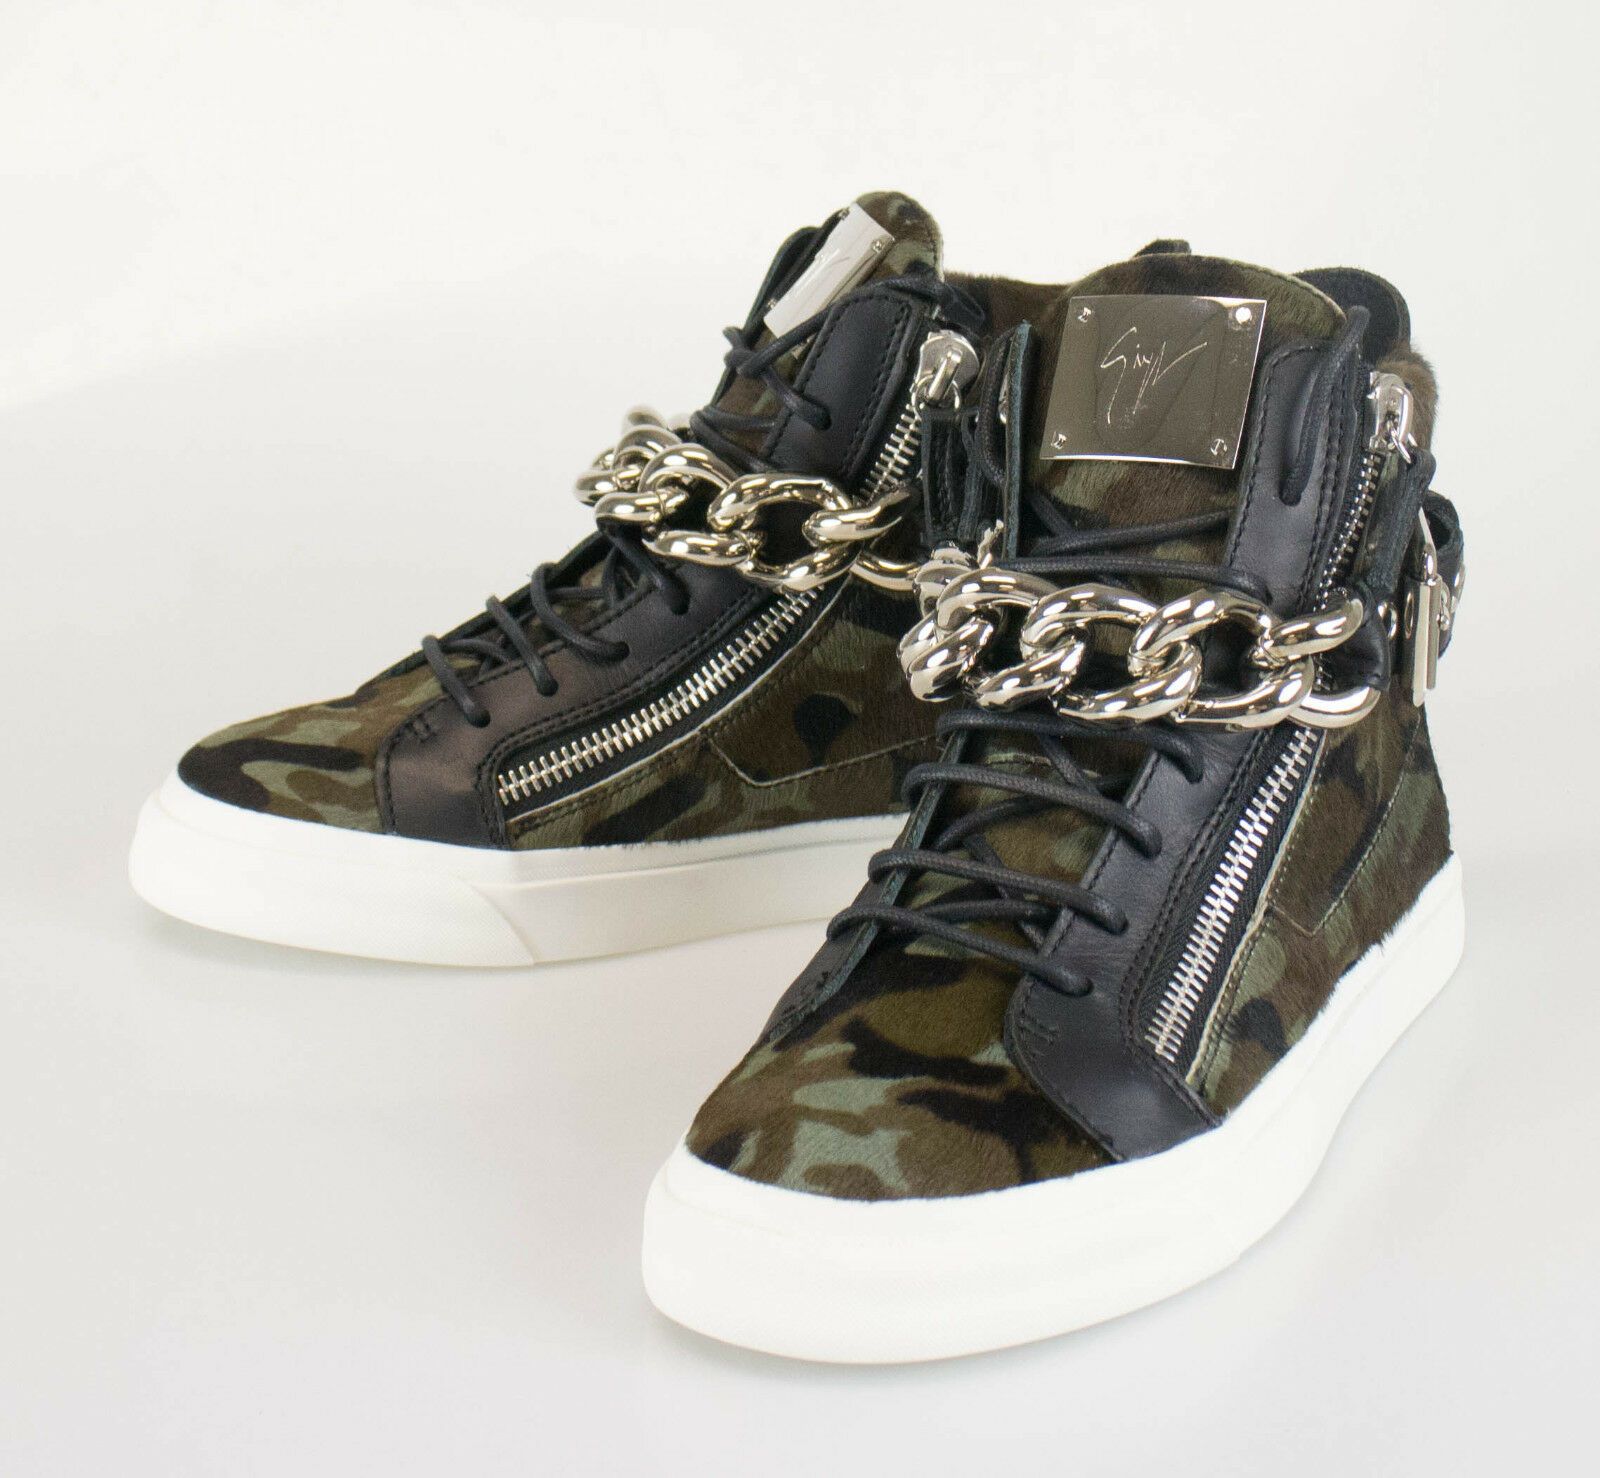 2722c6594804a GIUSEPPE ZANOTTI London Camuf Hi-Top Sneakers shoes Size 7 40 EU US New.  npjupt5842-Trainers